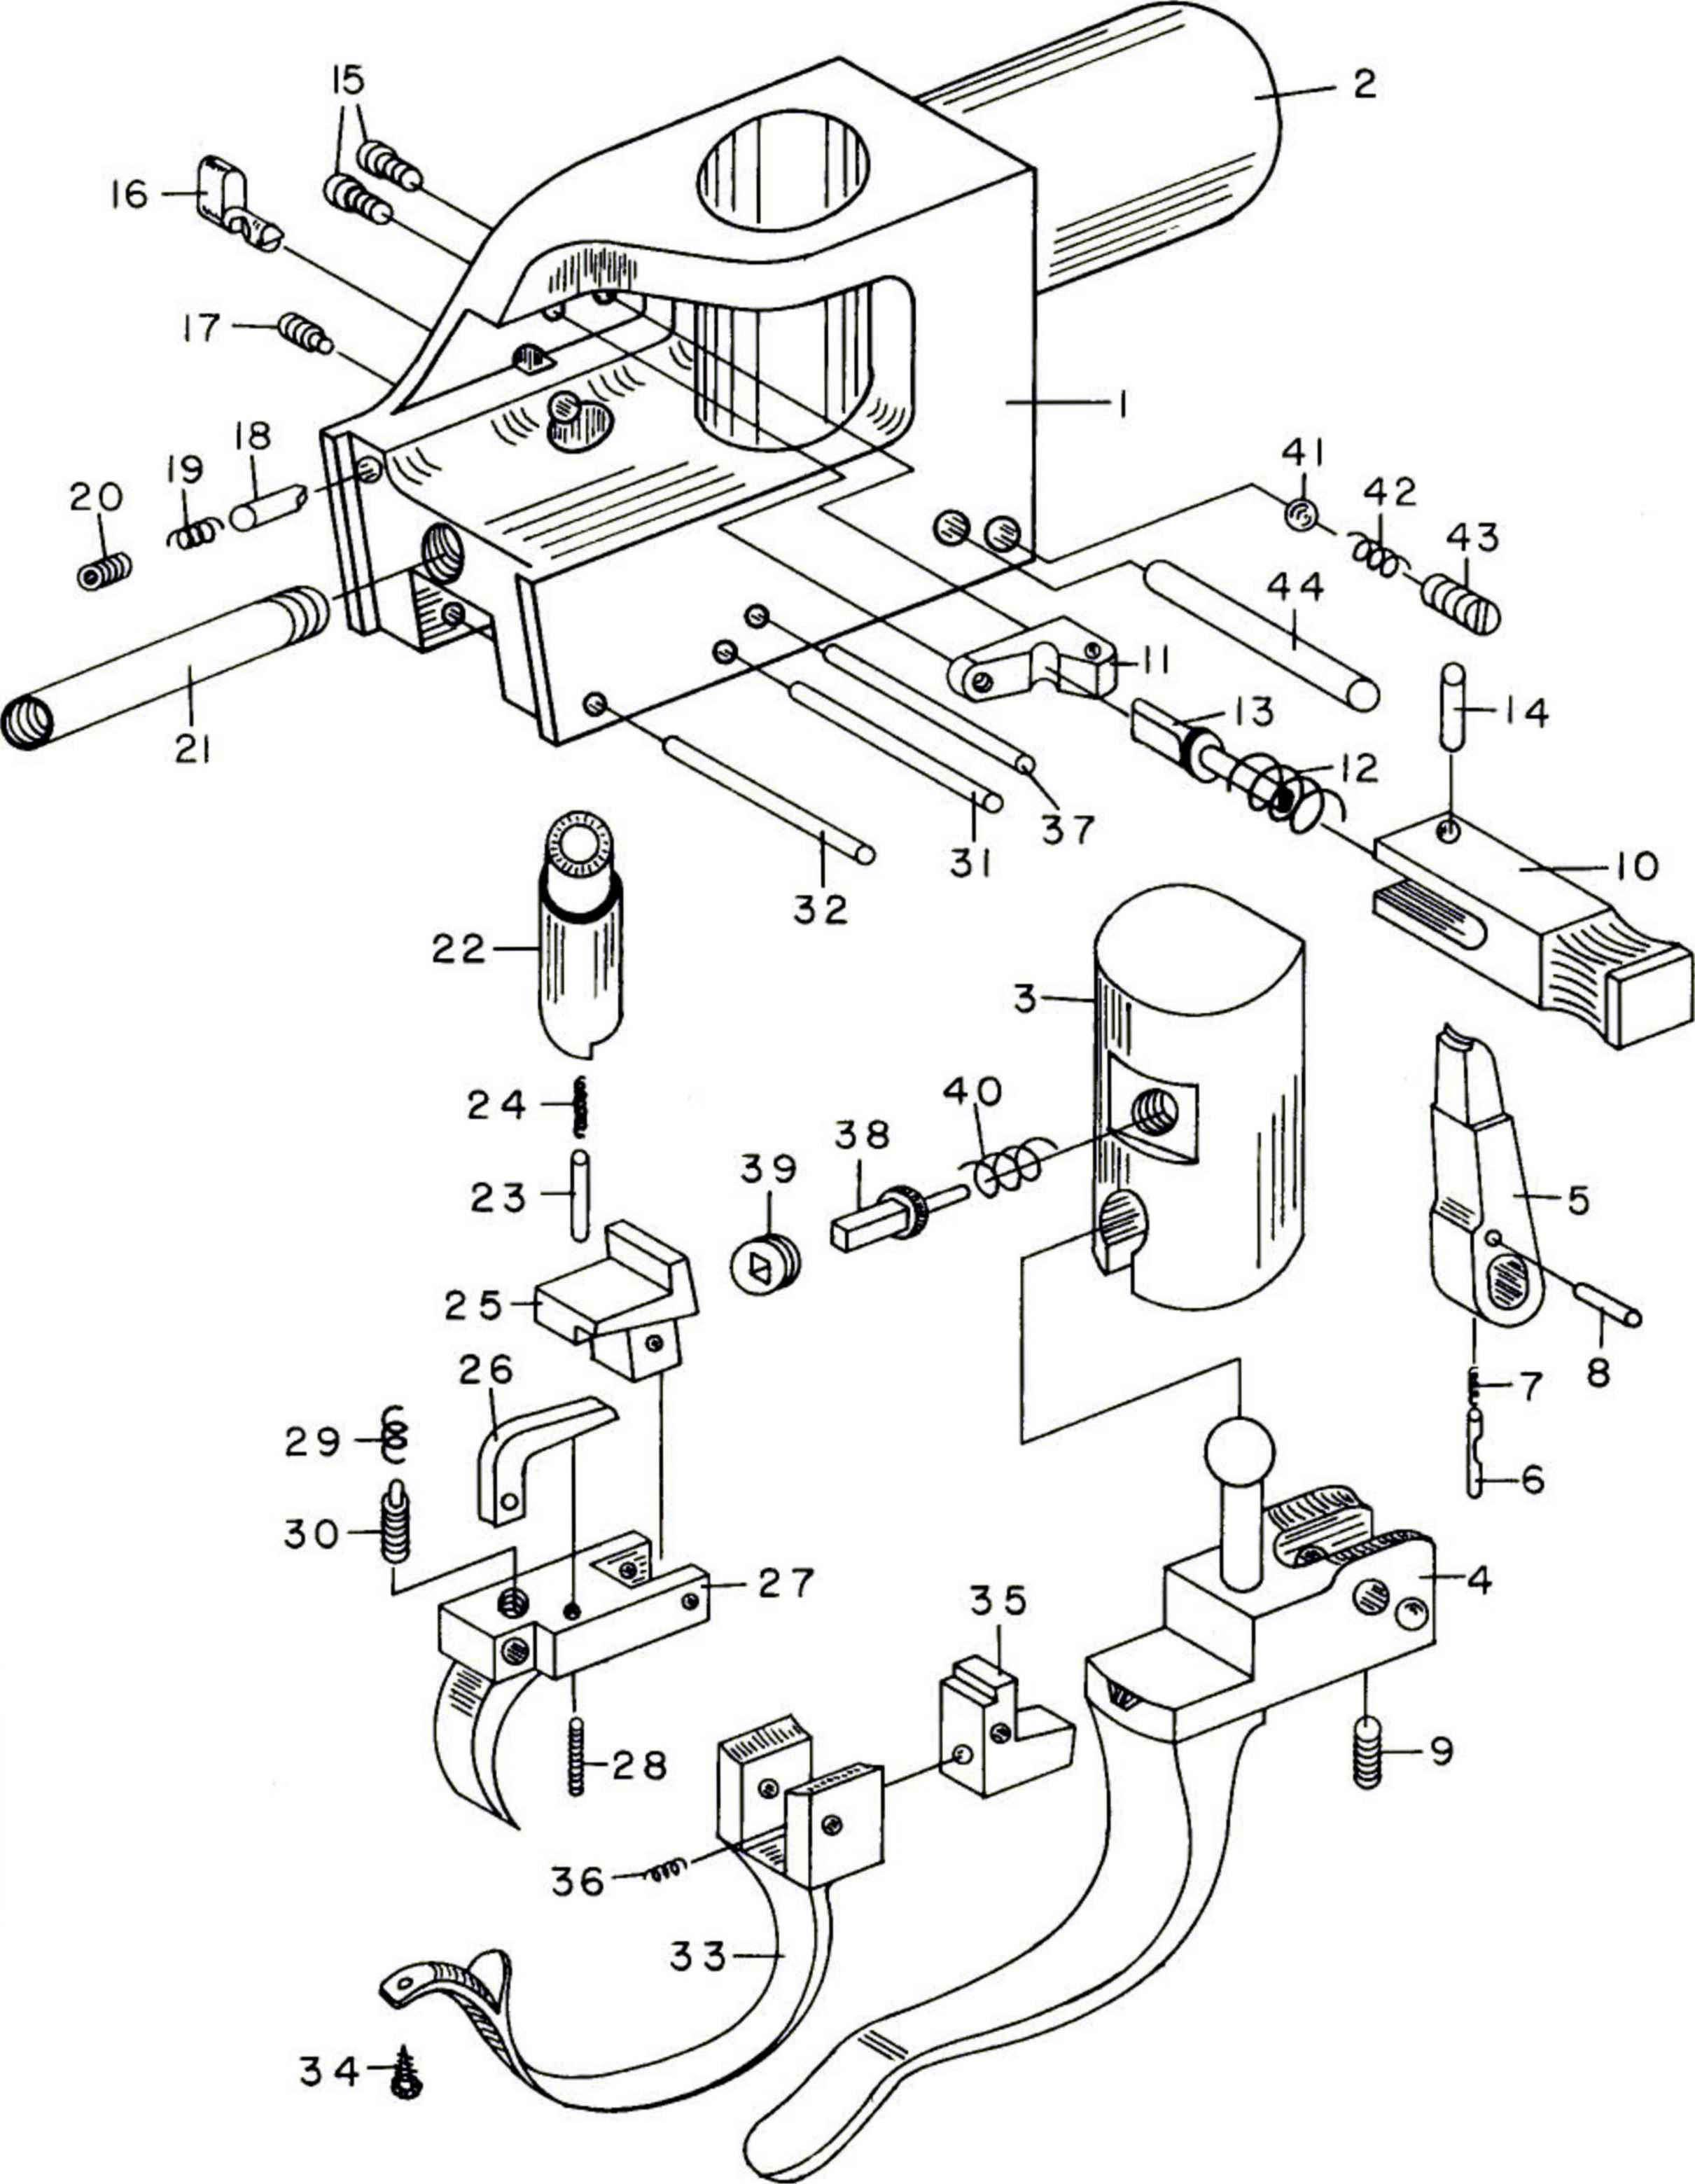 tattoo gun setup instructions